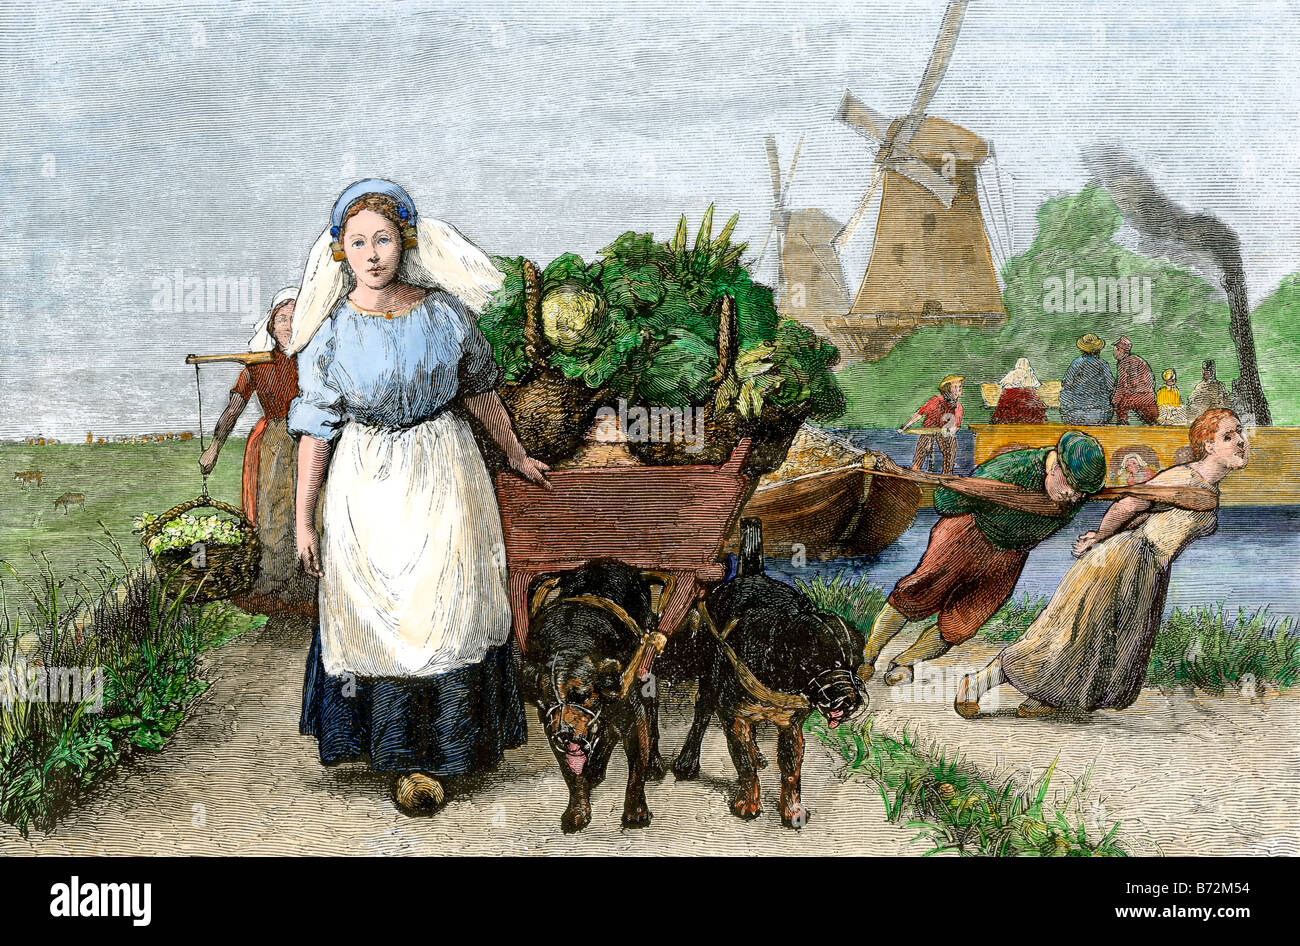 Dog-cart with fresh vegetables and people towing a barge along a Dutch canal 1800s. Digitally colored woodcut - Stock Image